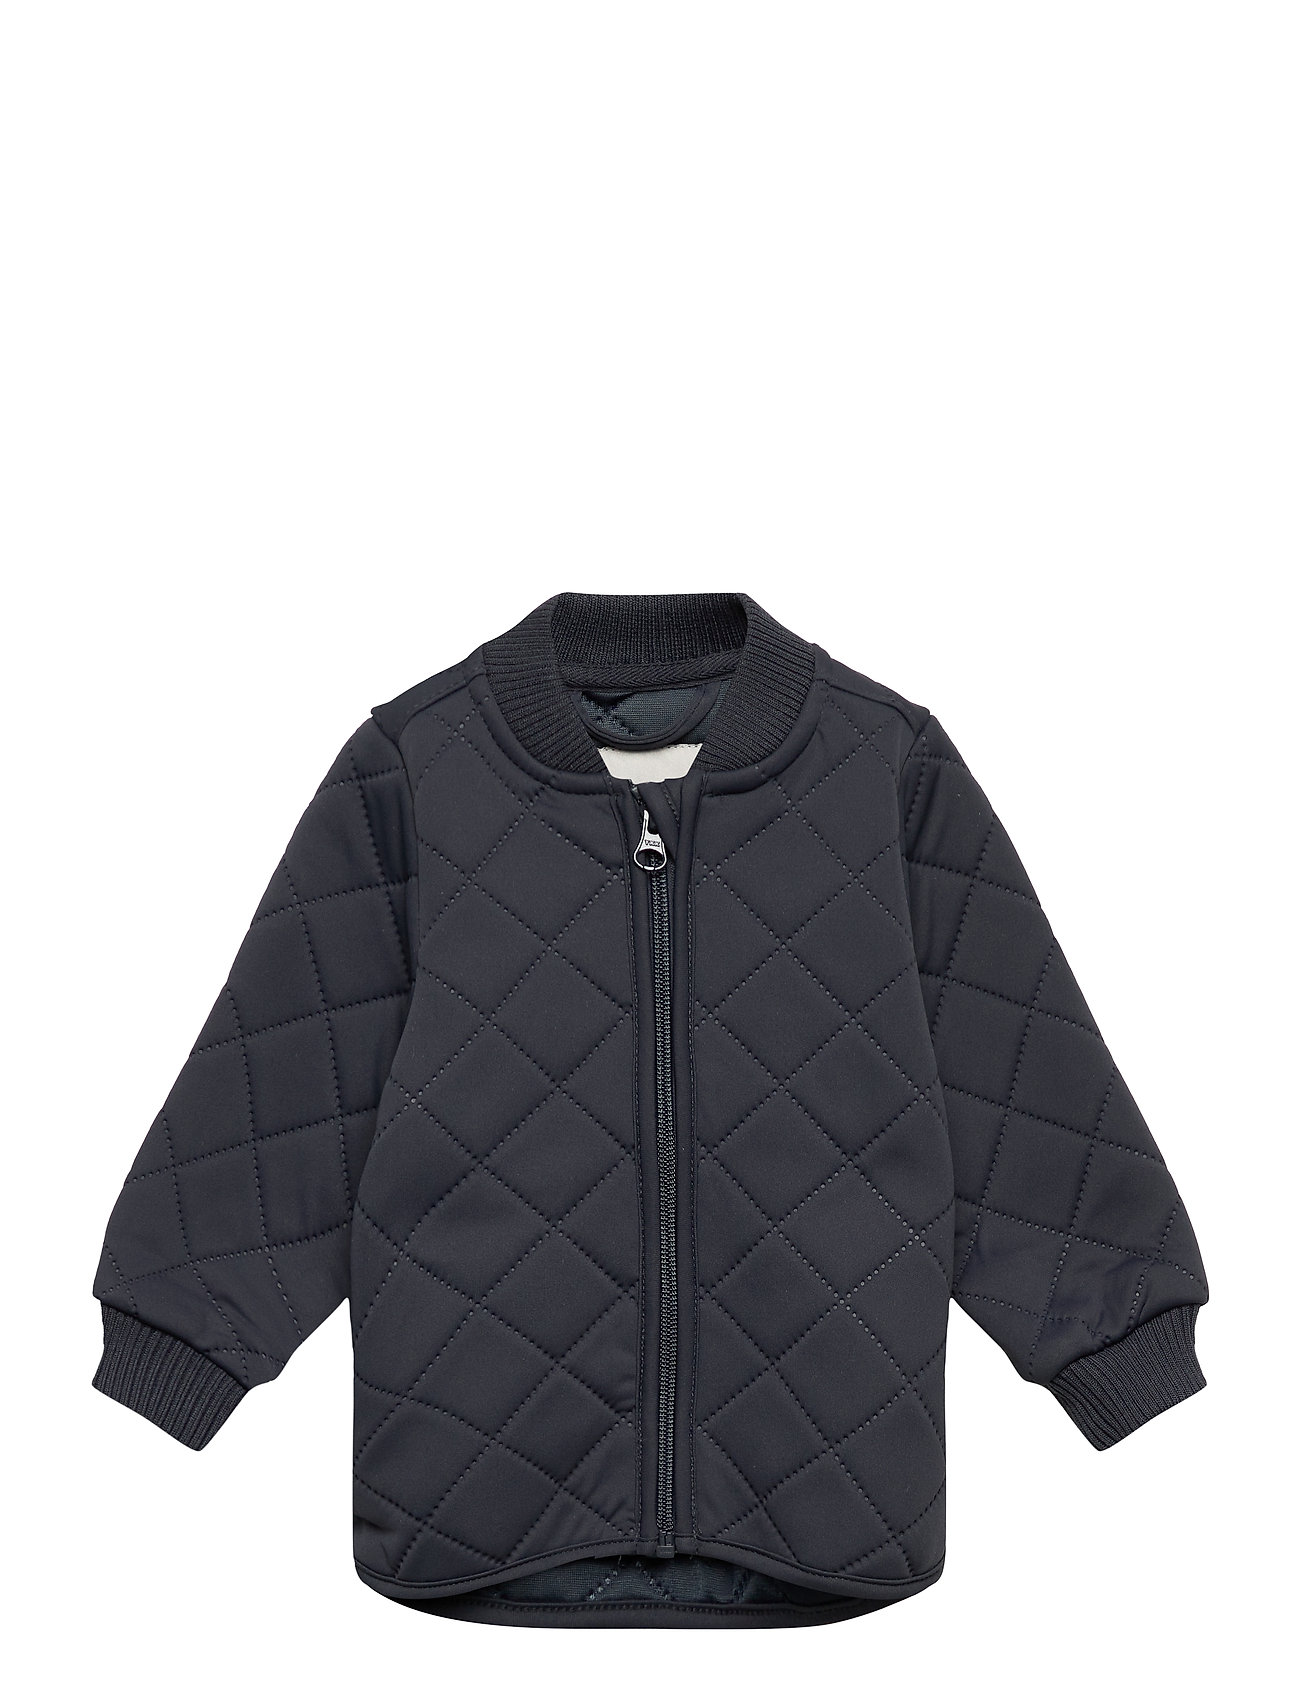 Image of Thermo Jacket Loui Outerwear Thermo Outerwear Thermo Jackets Blå Wheat (3447240317)